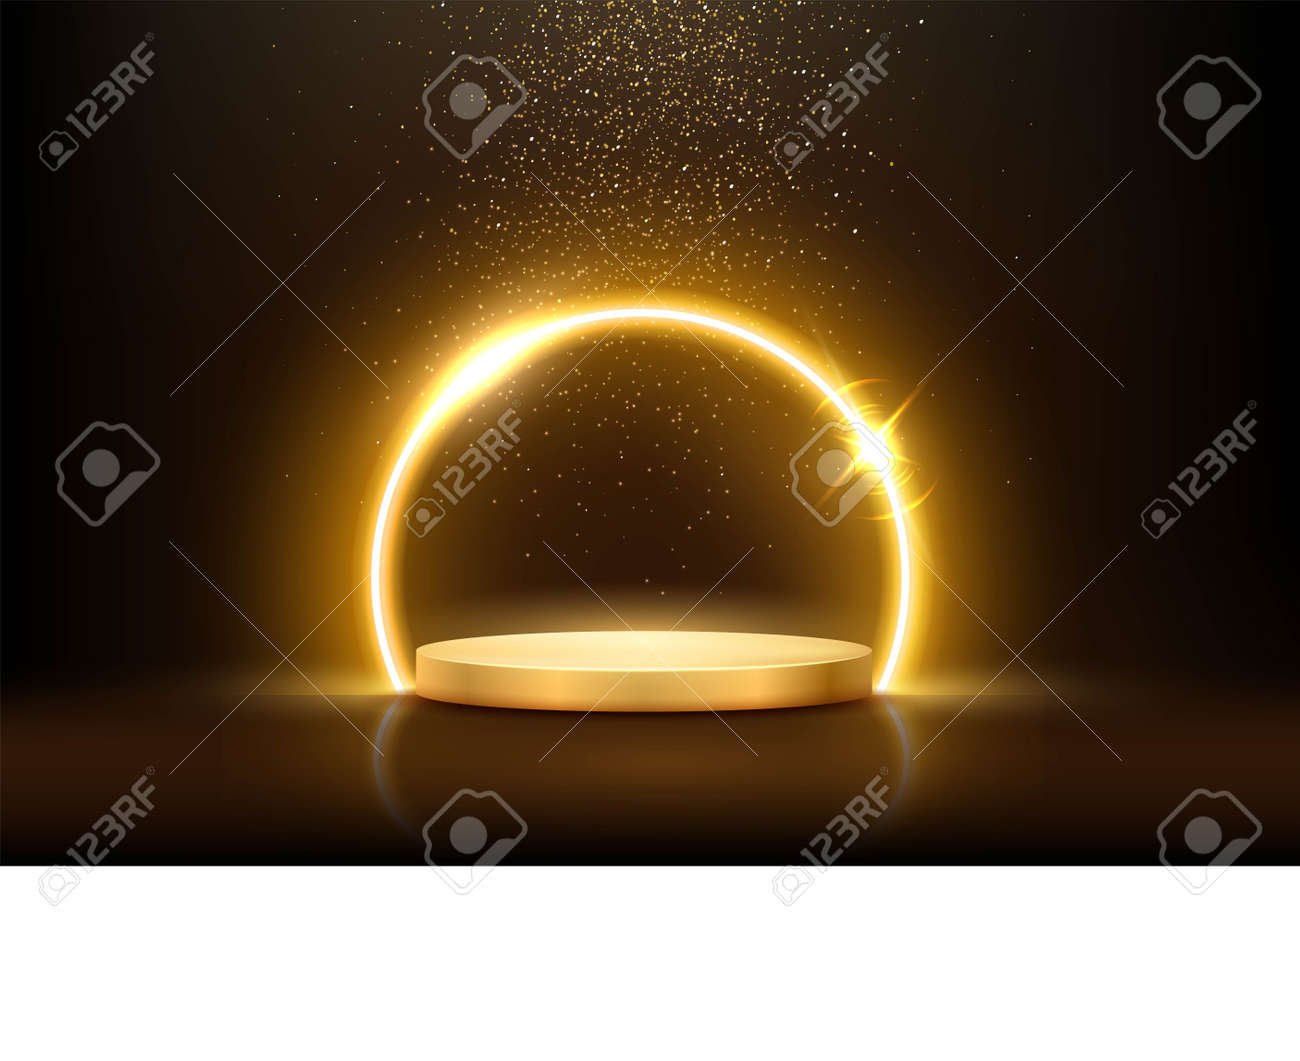 Glowing neon golden circle with sparkles in fog on gold podium. Abstract round electric light frame on dark background. Geometric fashion design vector illustration. Empty minimal ring art decoration - 163961700